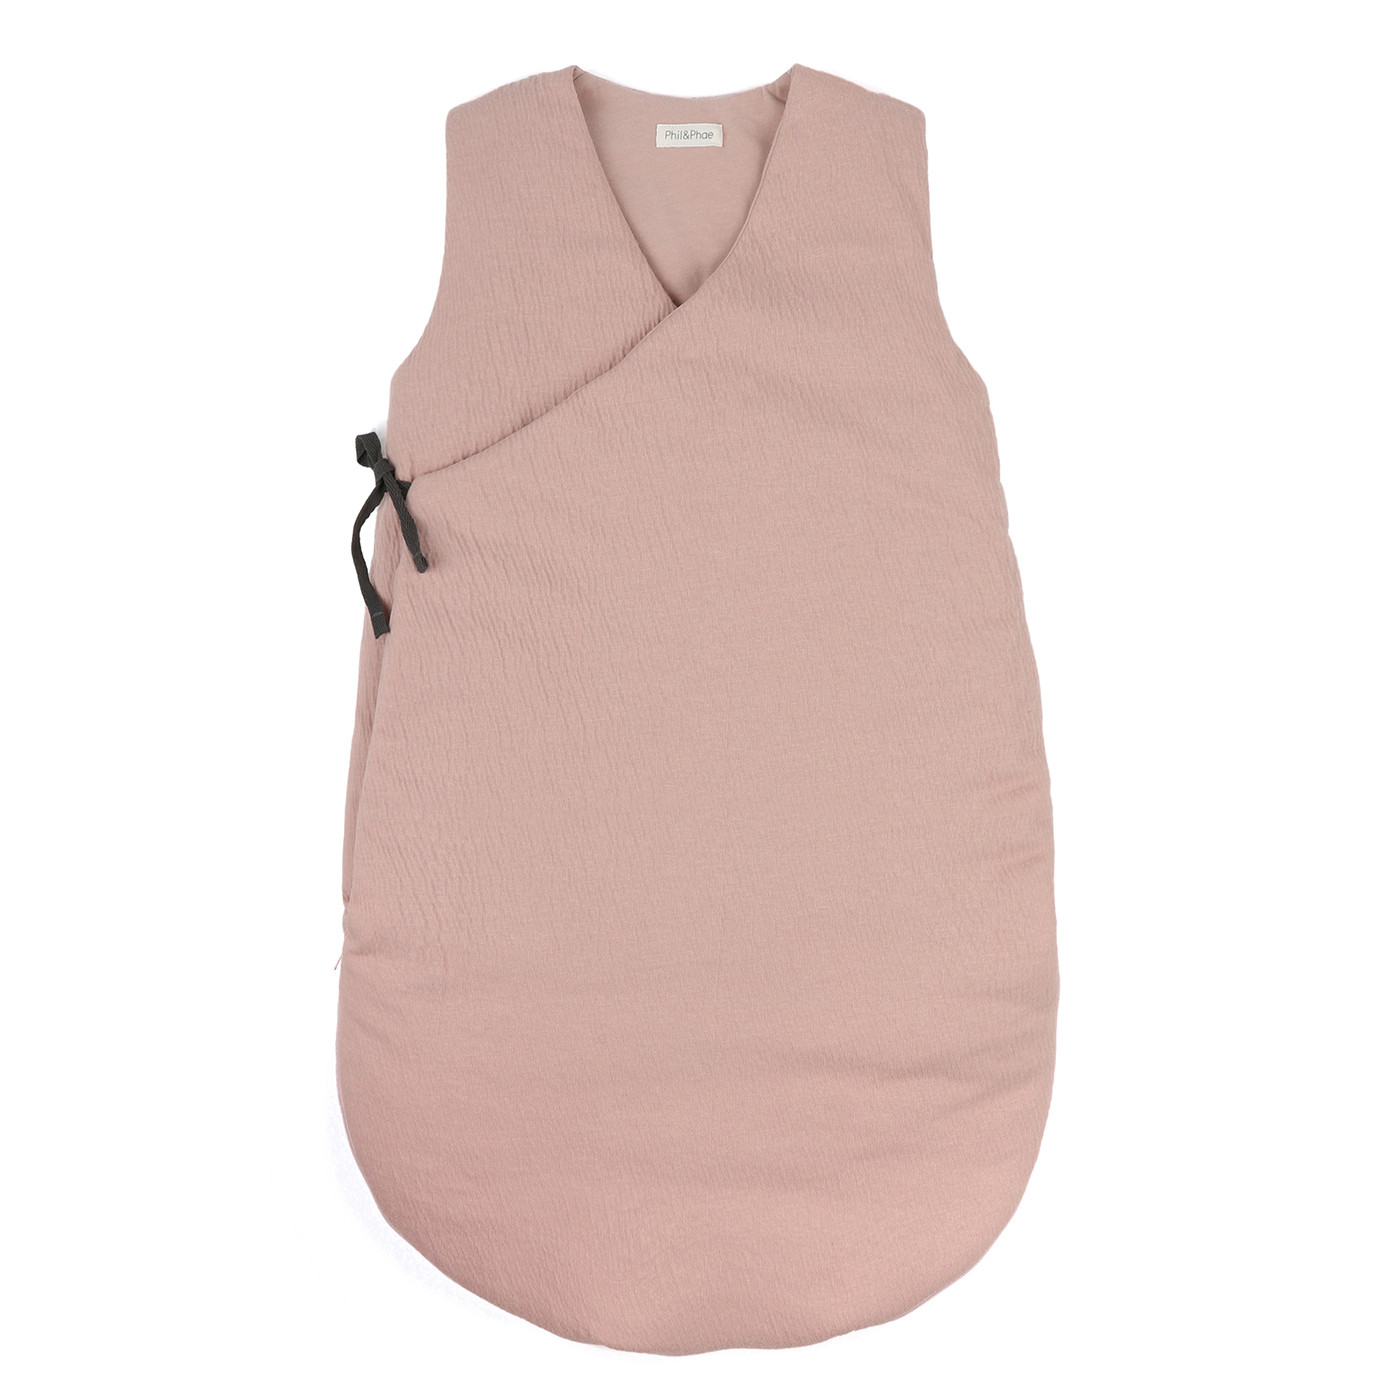 cross-over-sleeping-bag-upto24m-vintageblush.jpg